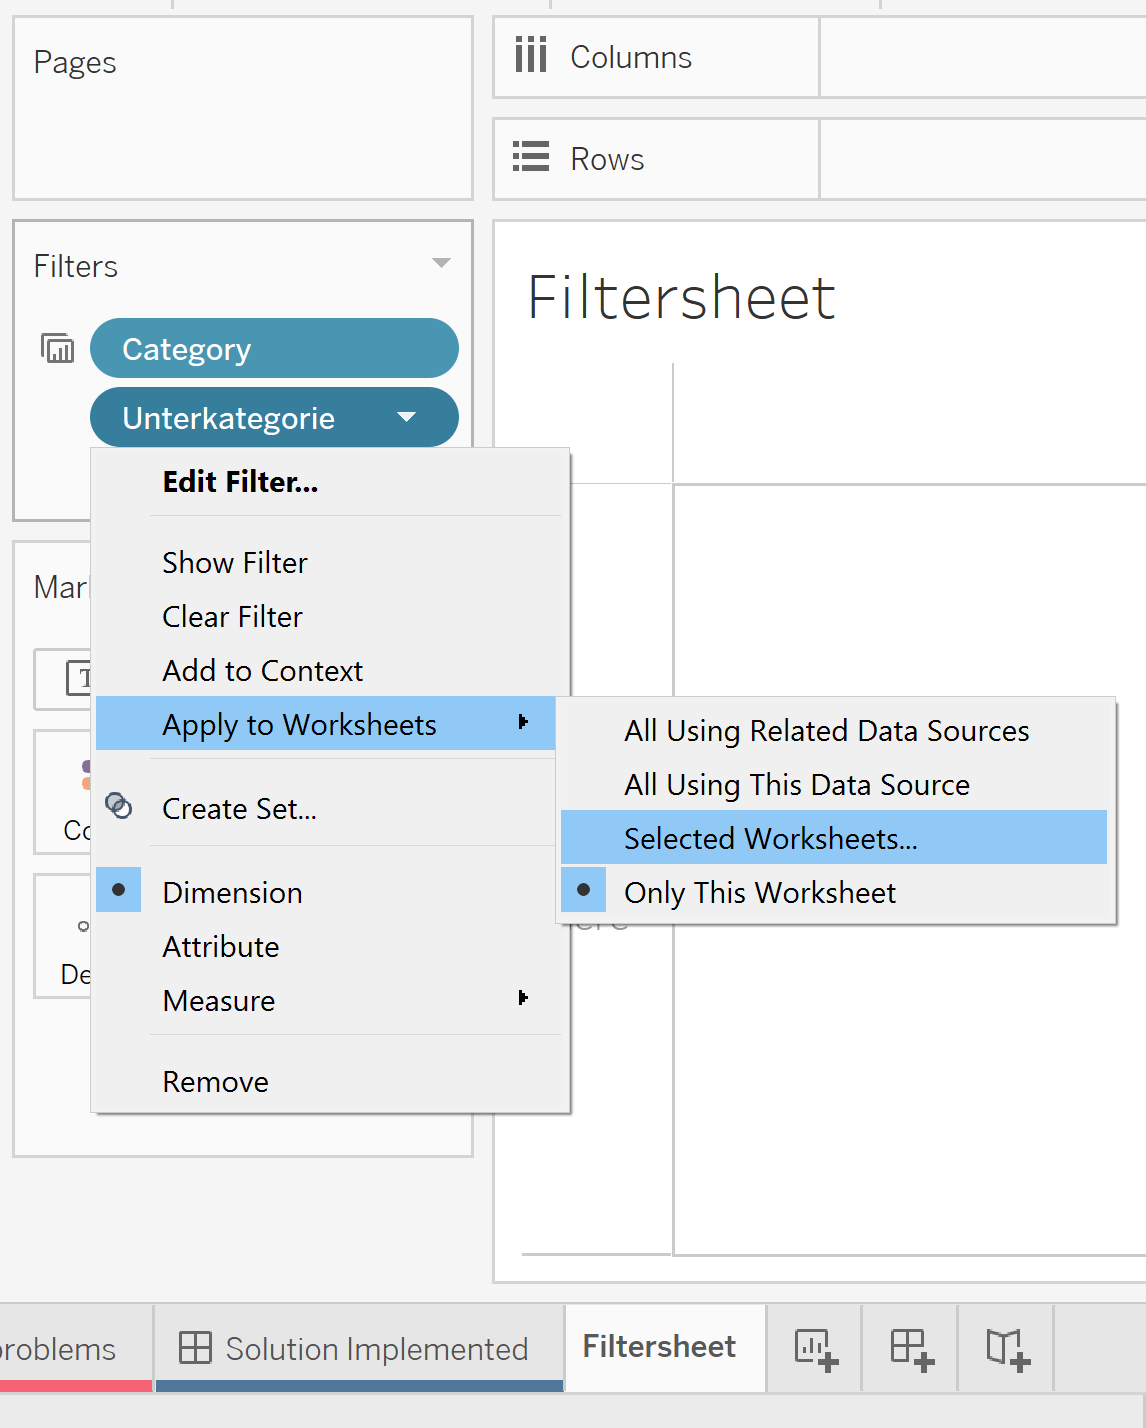 How To Create A Relevant Value Filter When Swapping Sheets